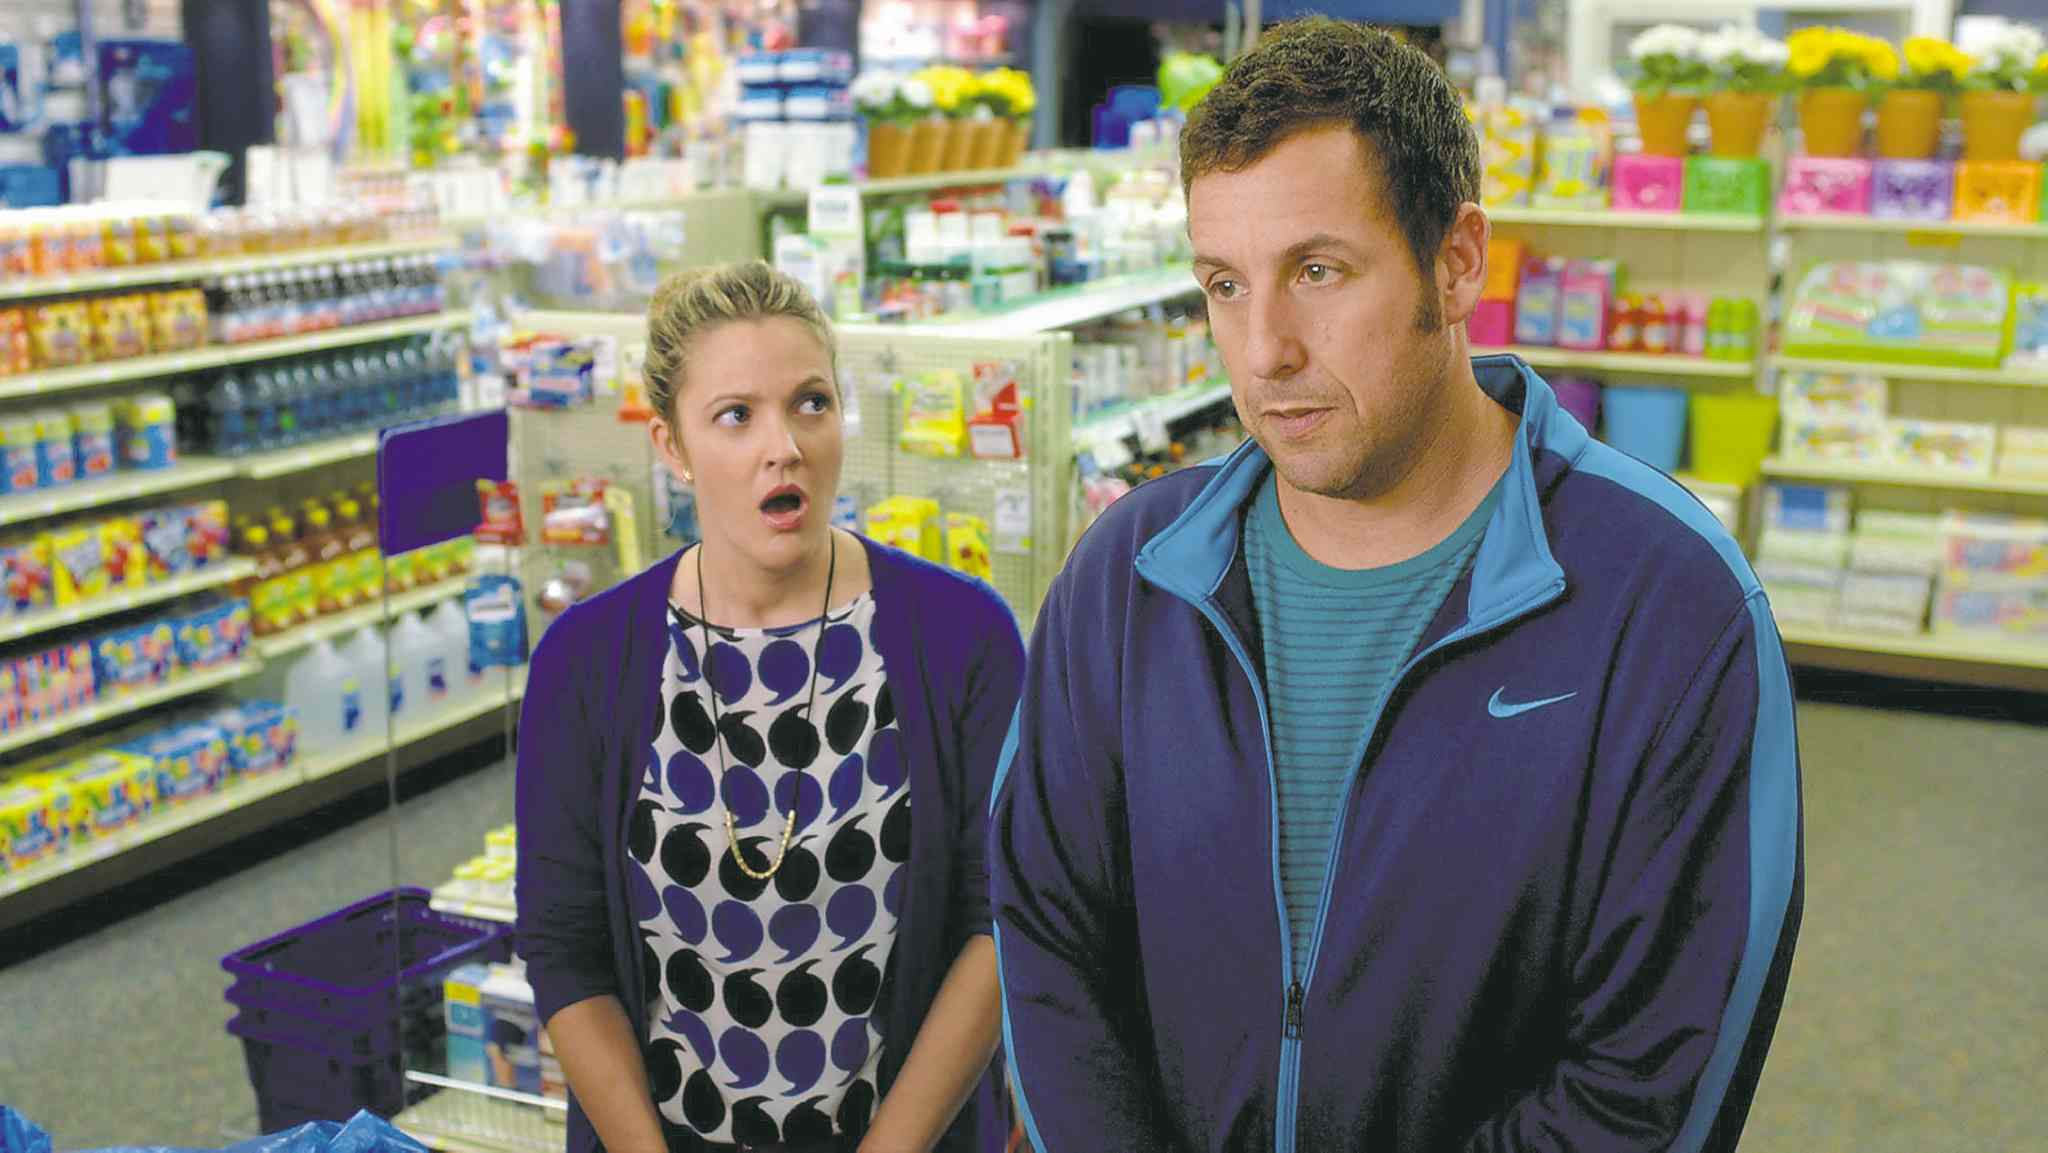 Drew Barrymore and Adam Sandler